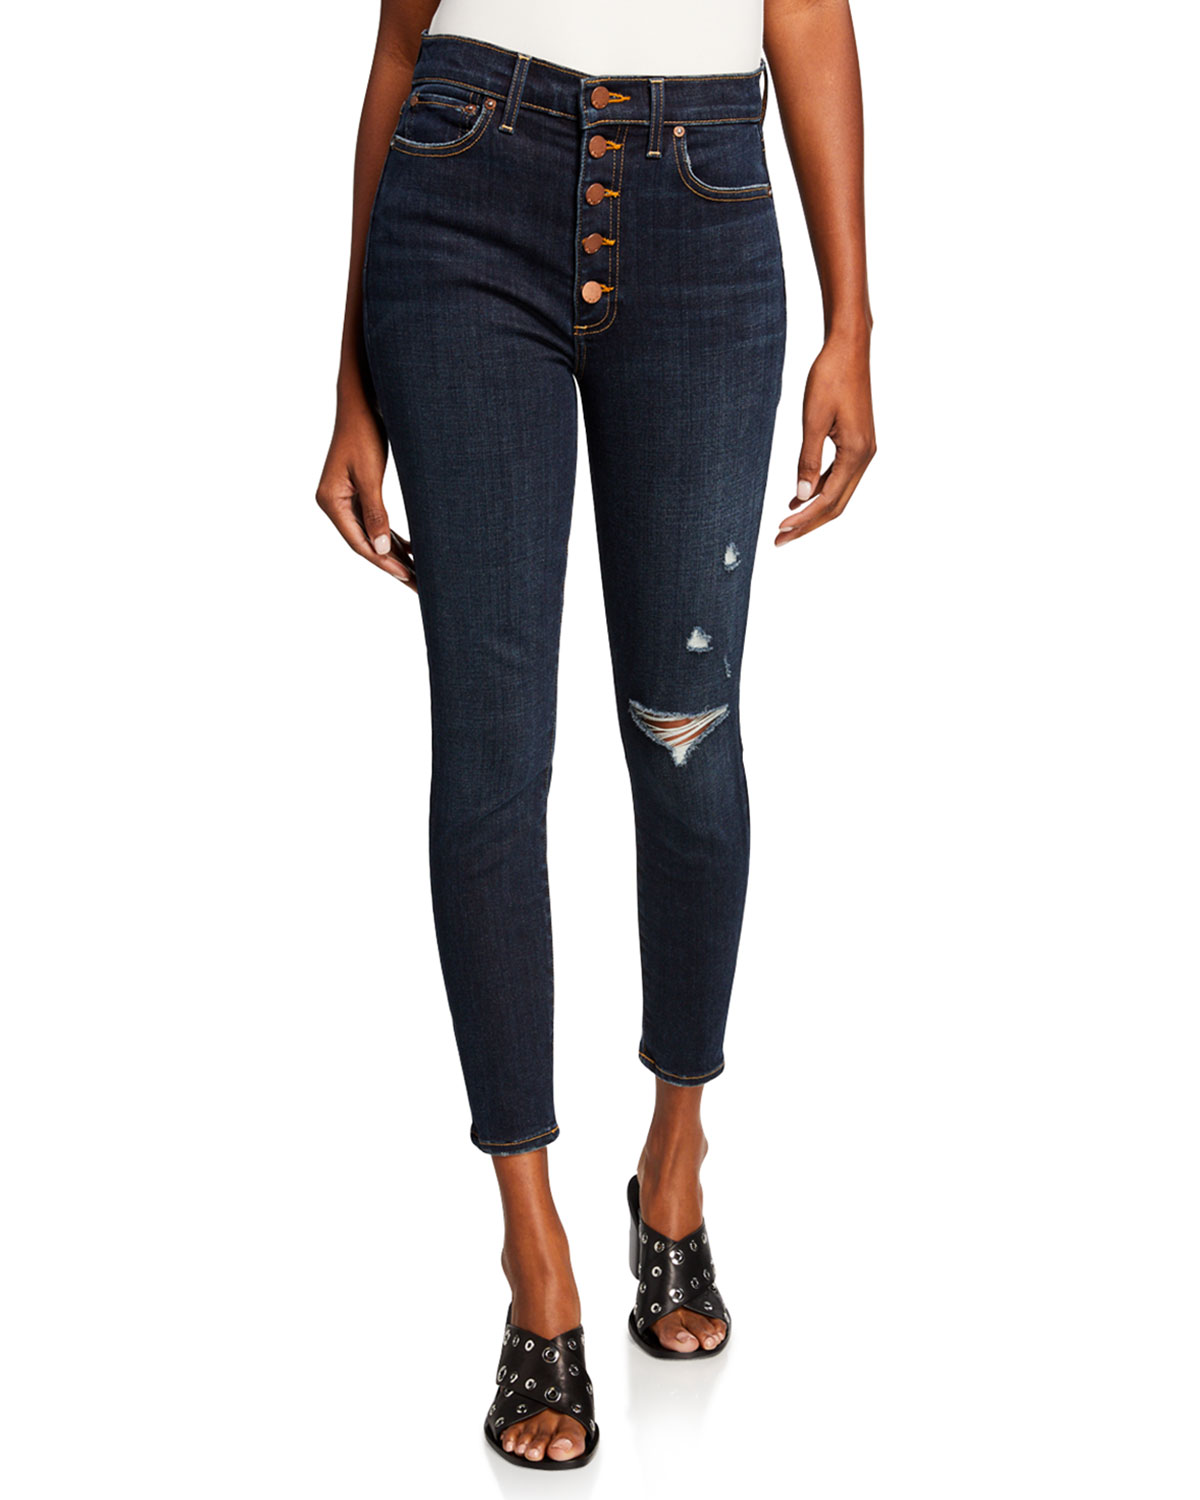 5ceb5400770 ALICE + OLIVIA JEANS Good High-Rise Exposed Button Skinny Jeans ...